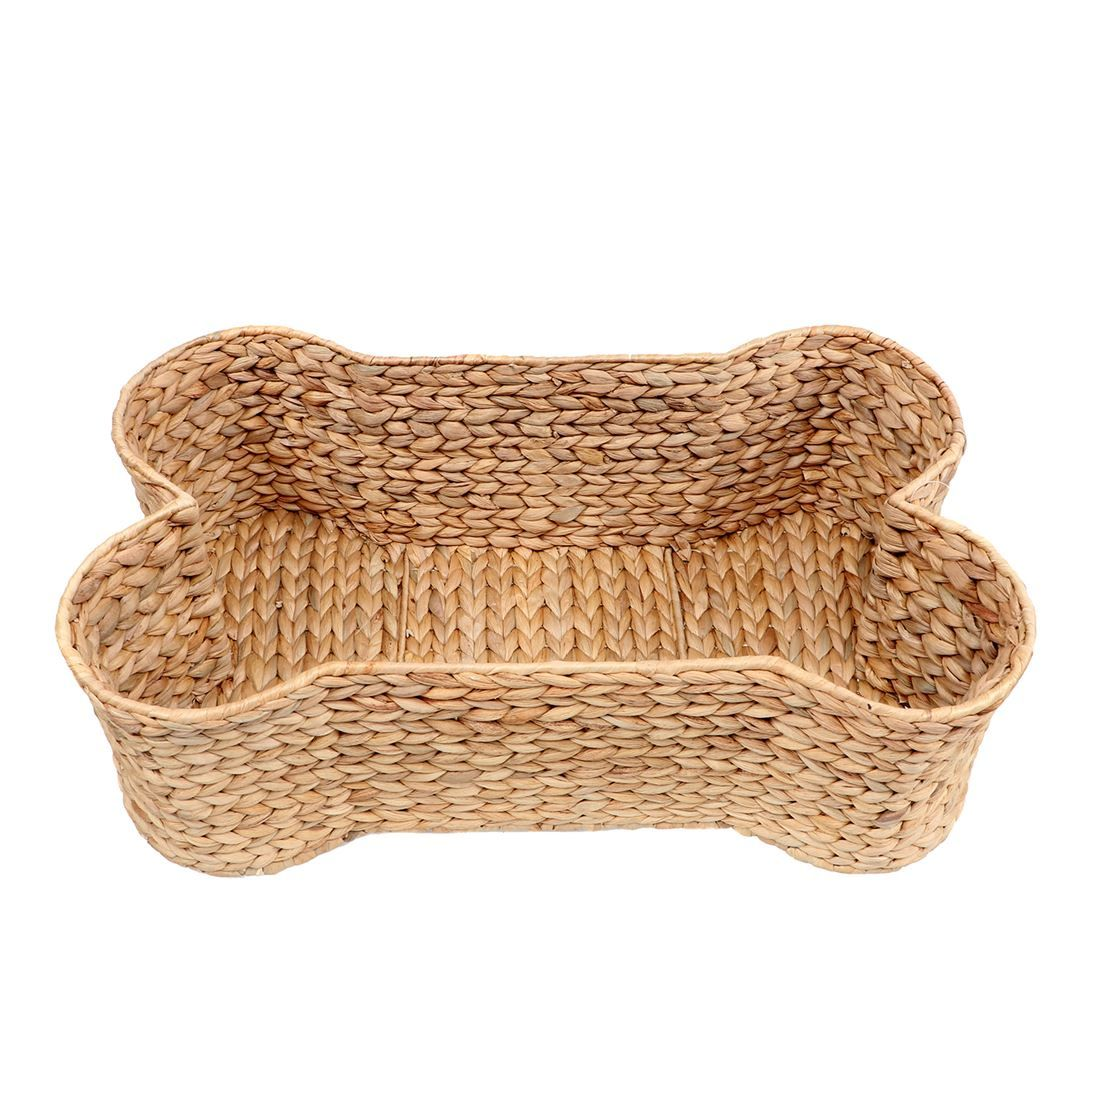 Woven Bone Shaped Basket/Pet Bed (With images) Pet bed